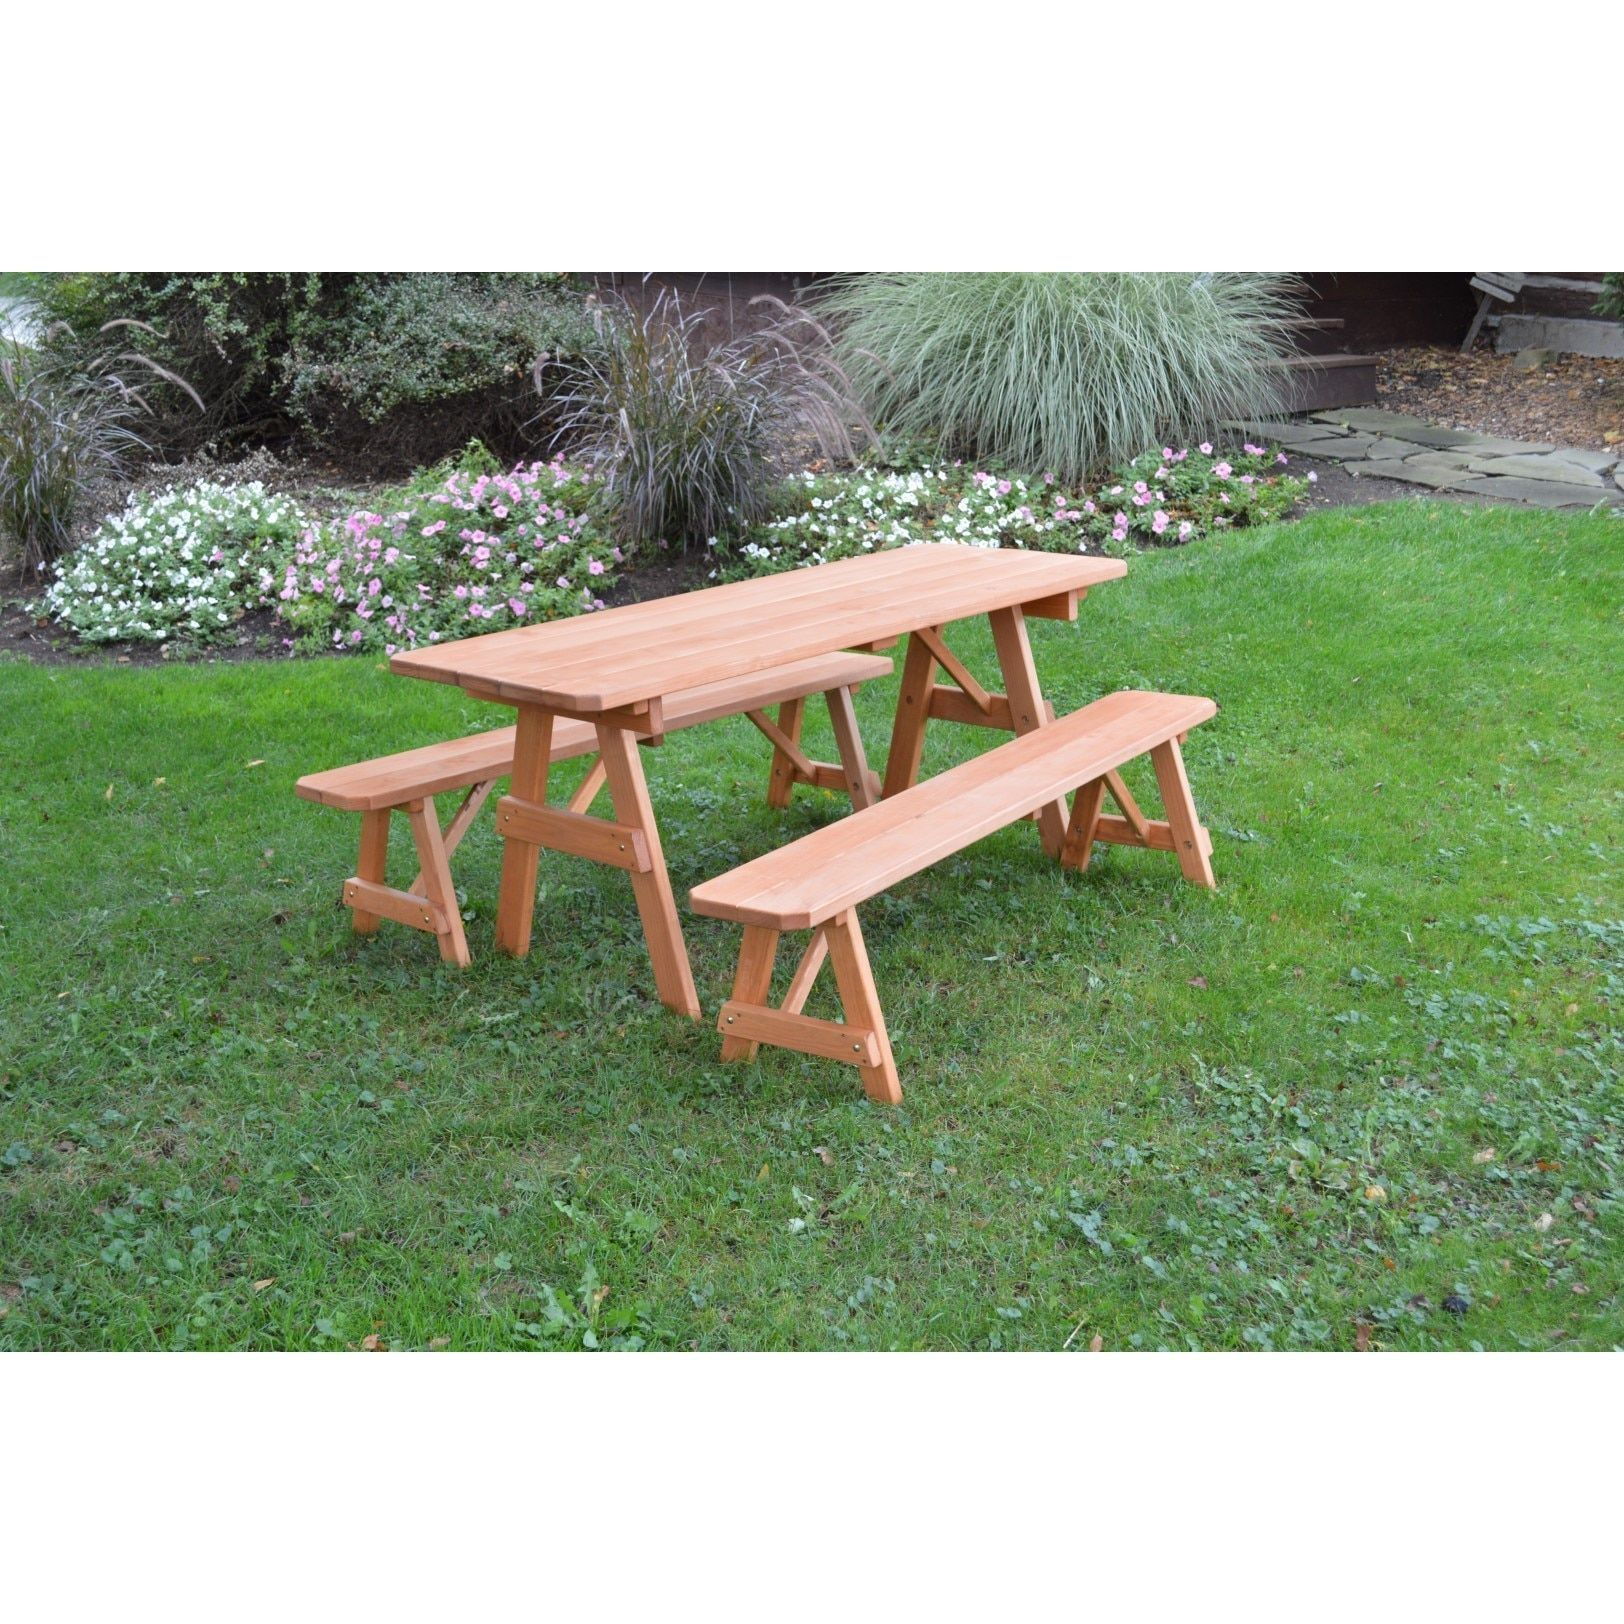 Online Shopping Bedding Furniture Electronics Jewelry Clothing More Picnic Table Cedar Stain Outdoor Deck Furniture